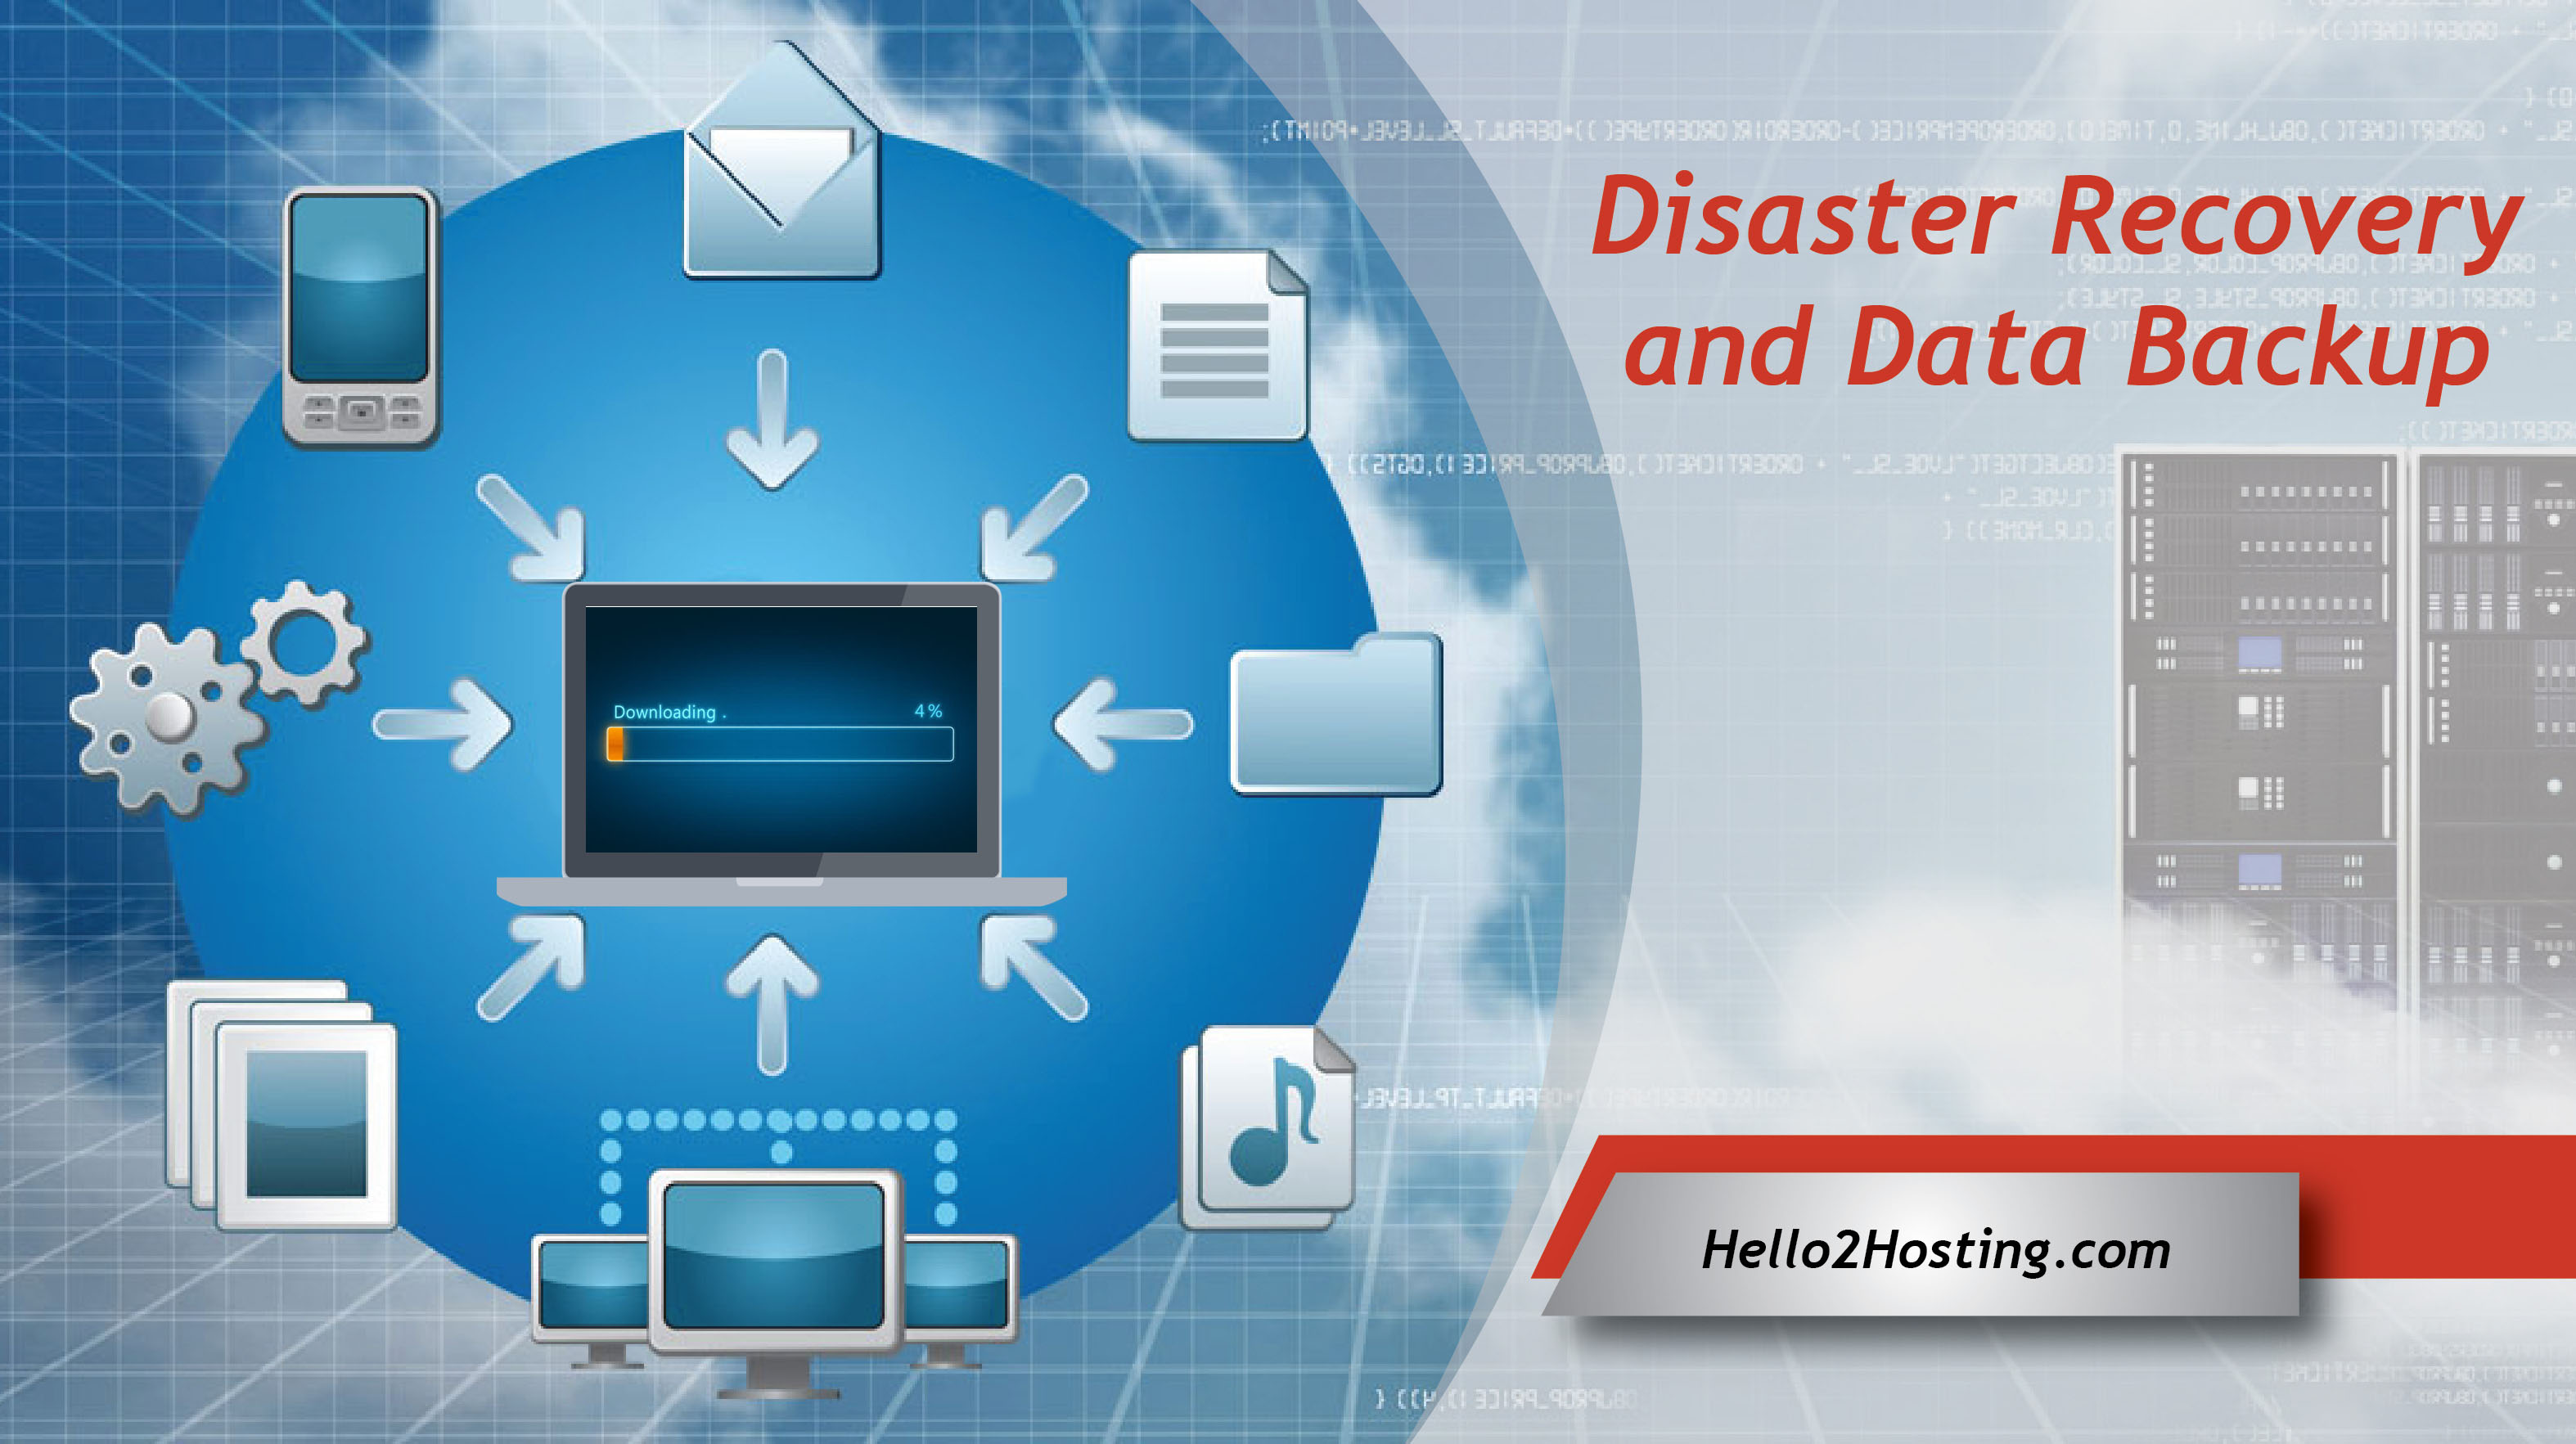 Data Backup & Disaster Recovery